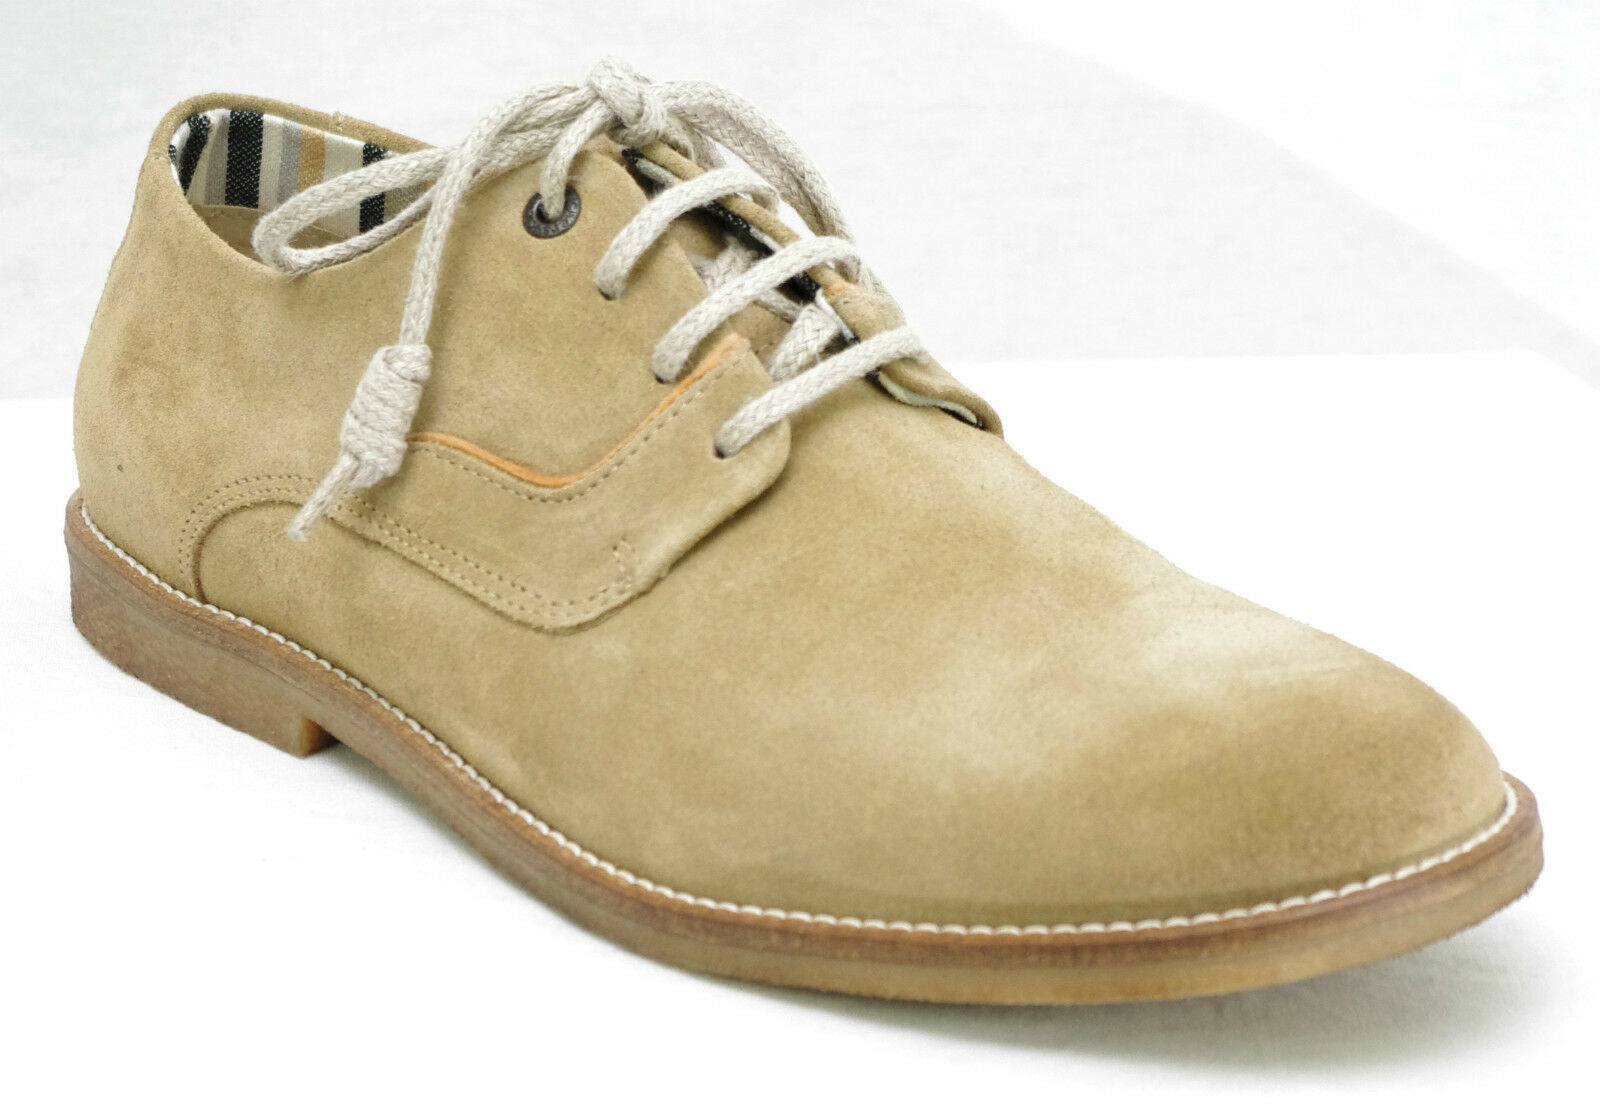 Clair Cuir Kickers Derbies Bachalcis Homme Nubuck Chaussures Beige wP0qIT